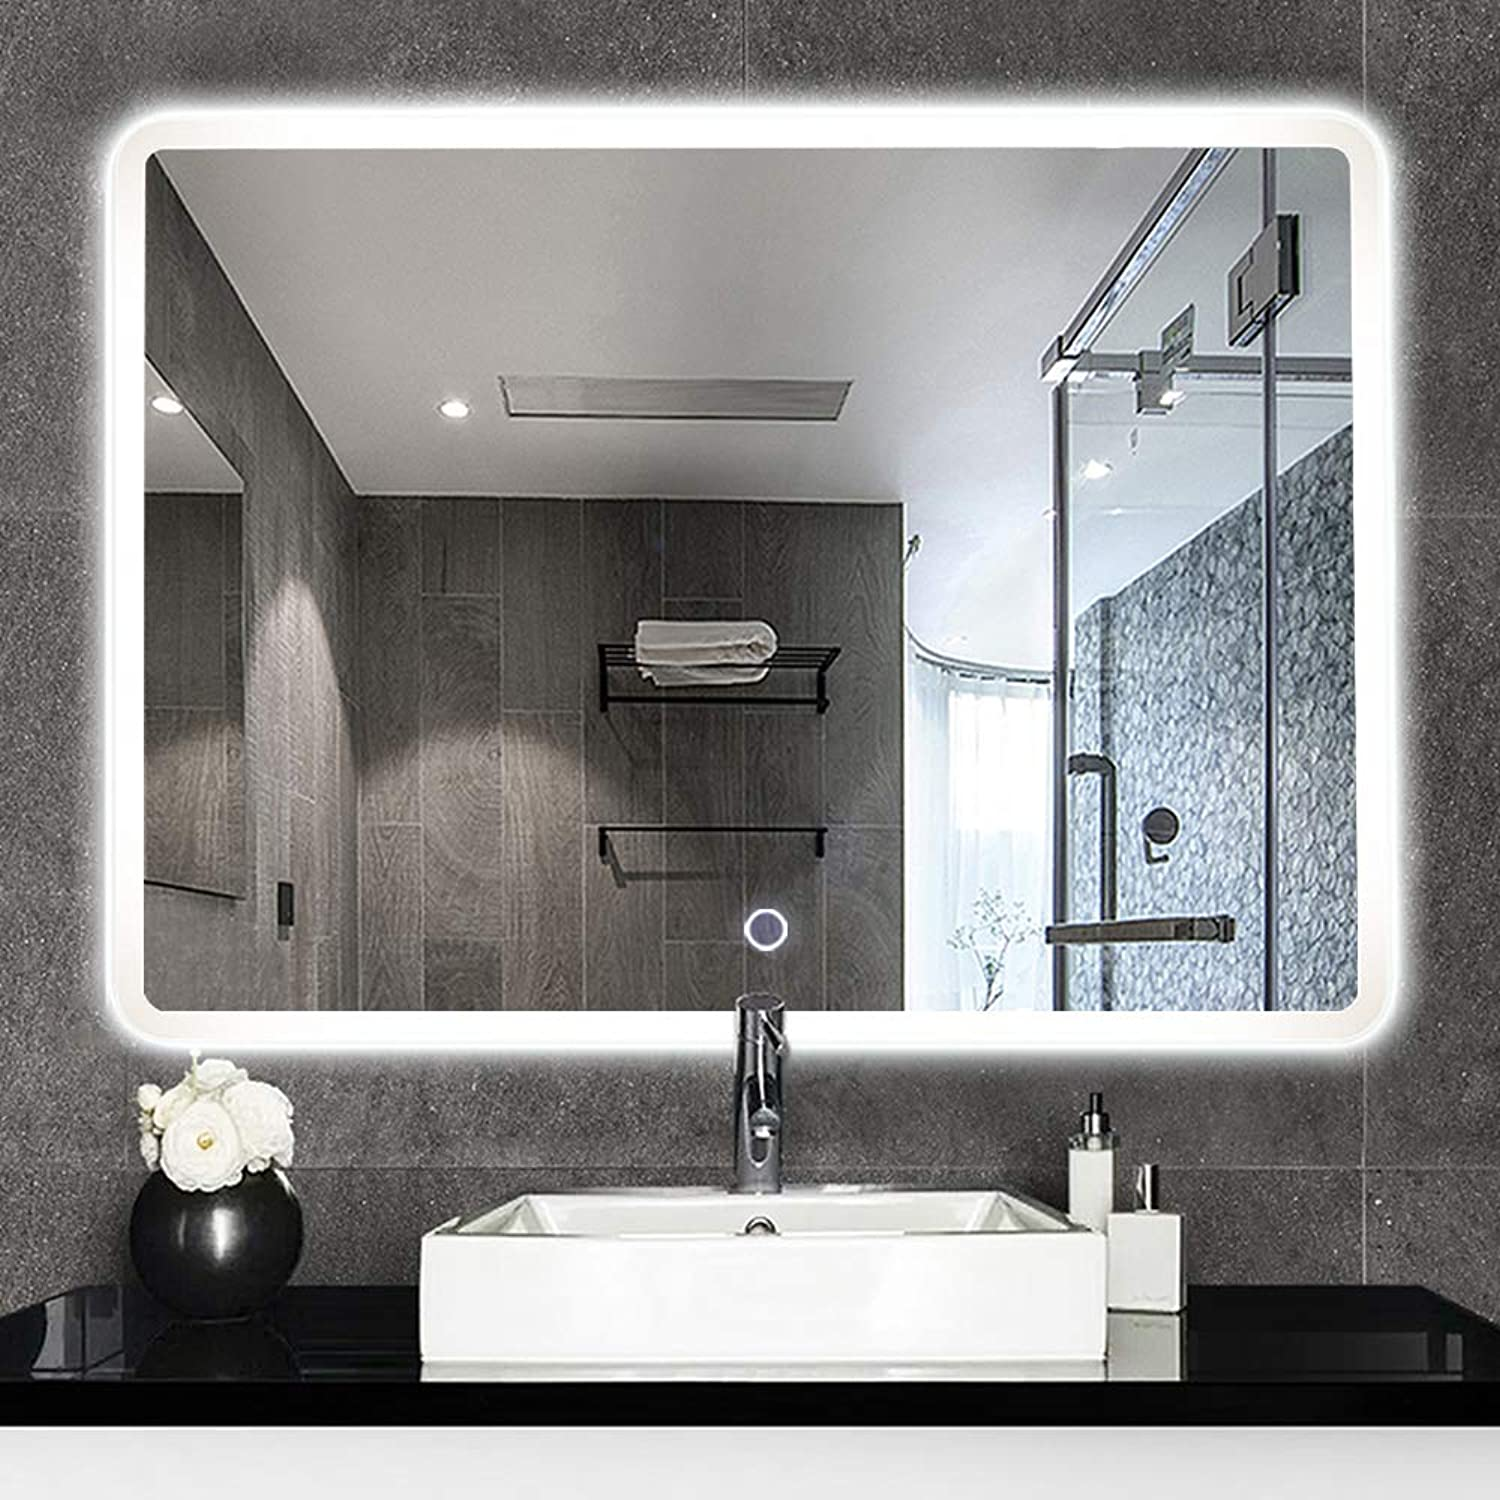 NeuType 35  x 31  Backlit Mirror Bathroom Sink Mirror Horizontal and greenical Wall-Mounted LED Vanity Mirror with Touch Button